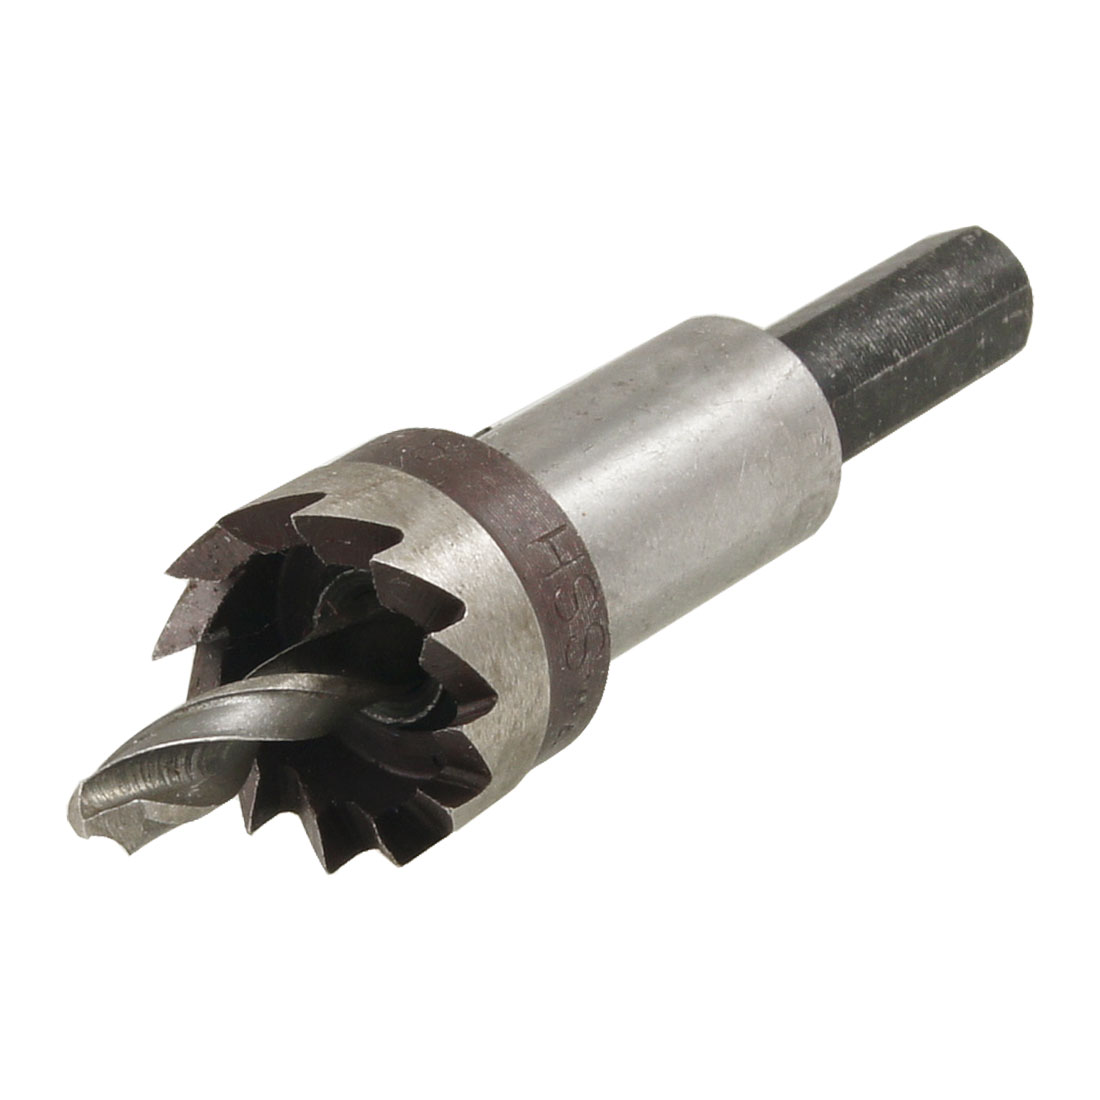 5mm Twist Drill Bit Iron Cutting Cutting 18mm Dia Iron Hole Saw